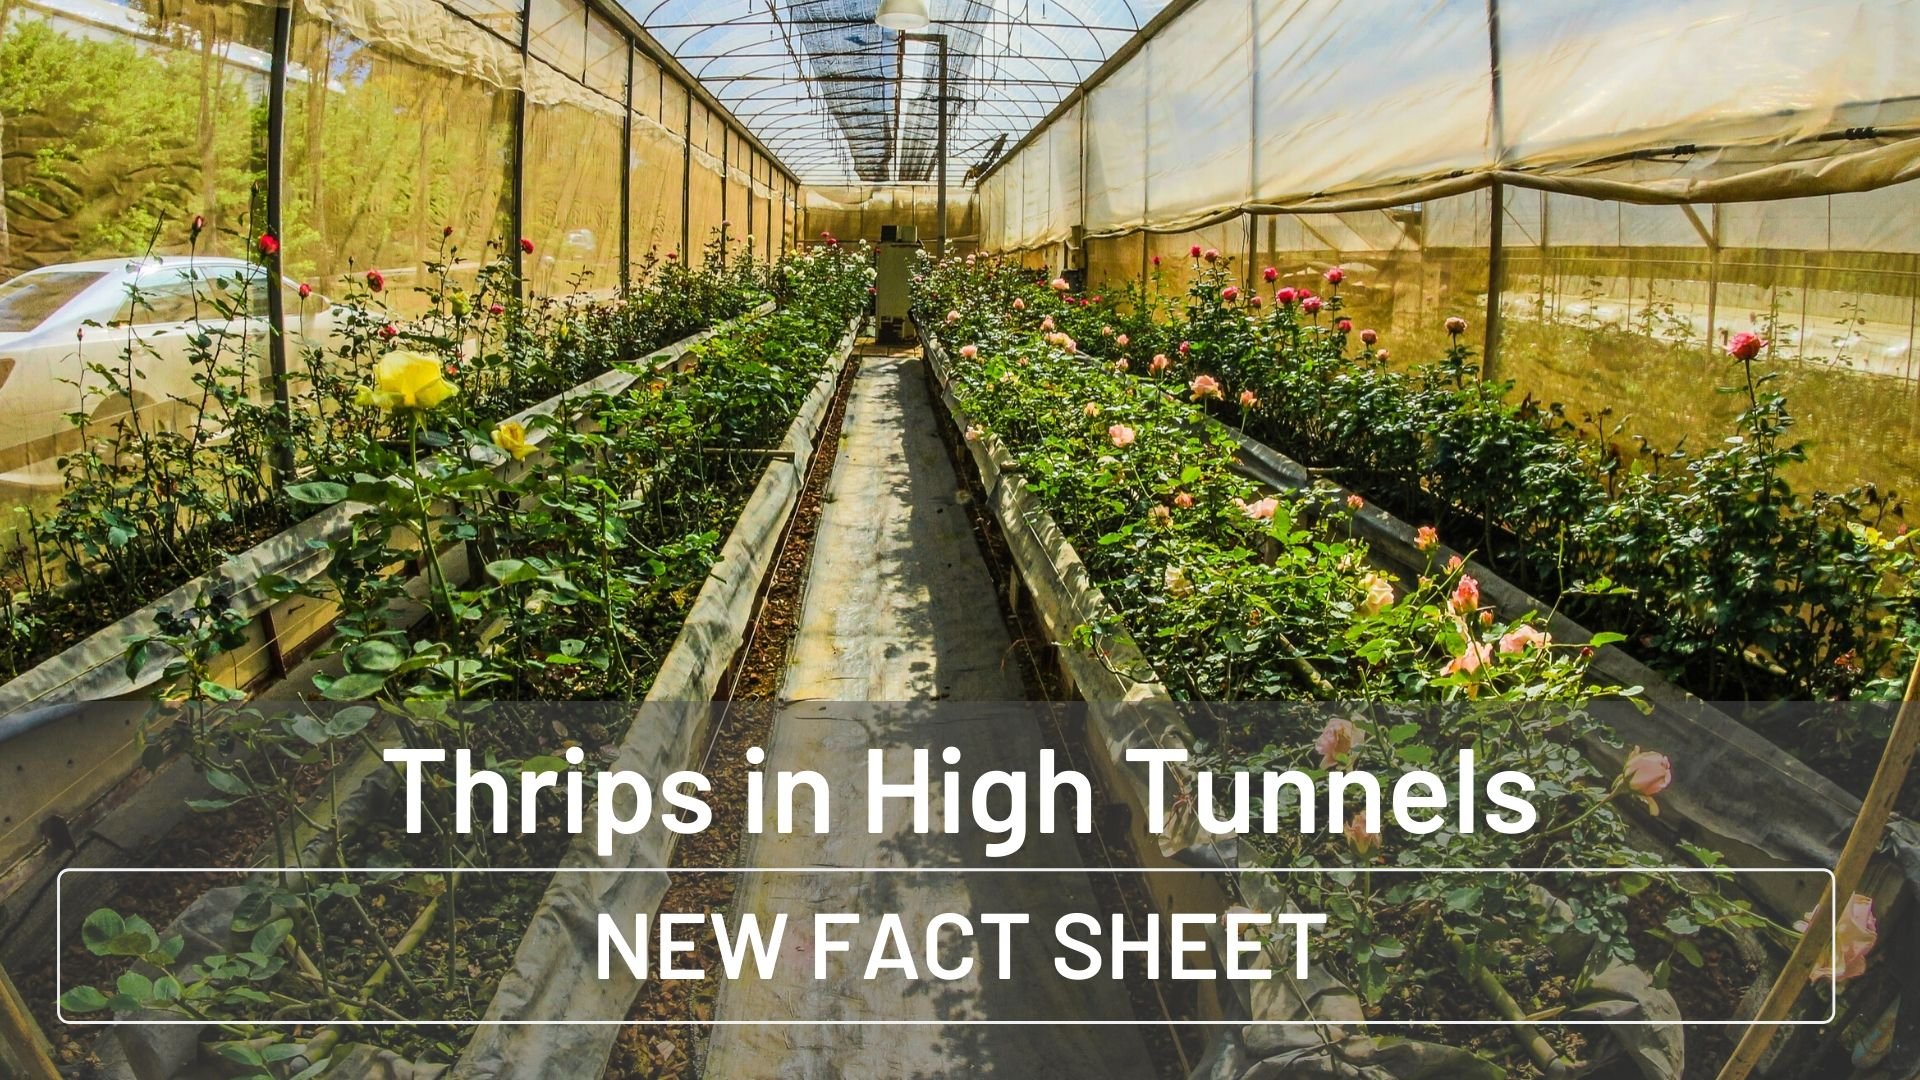 Thrips Management in High Tunnels